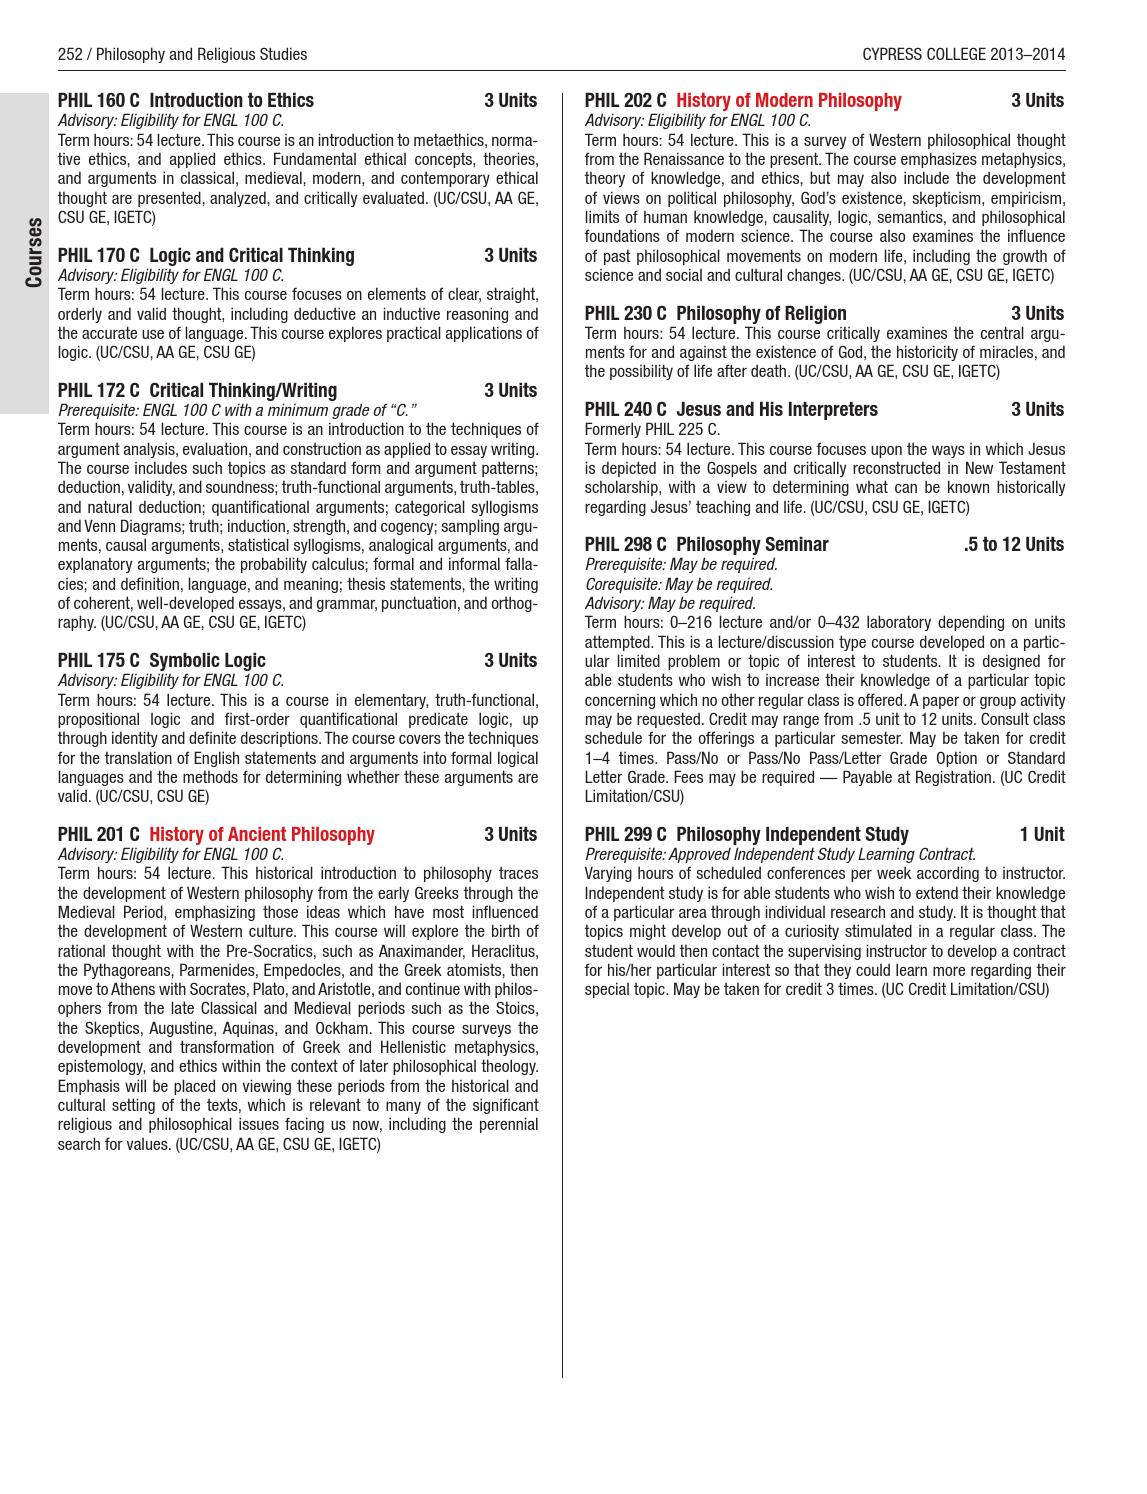 2013 14 cypress college catalog by cypress college issuu biocorpaavc Image collections